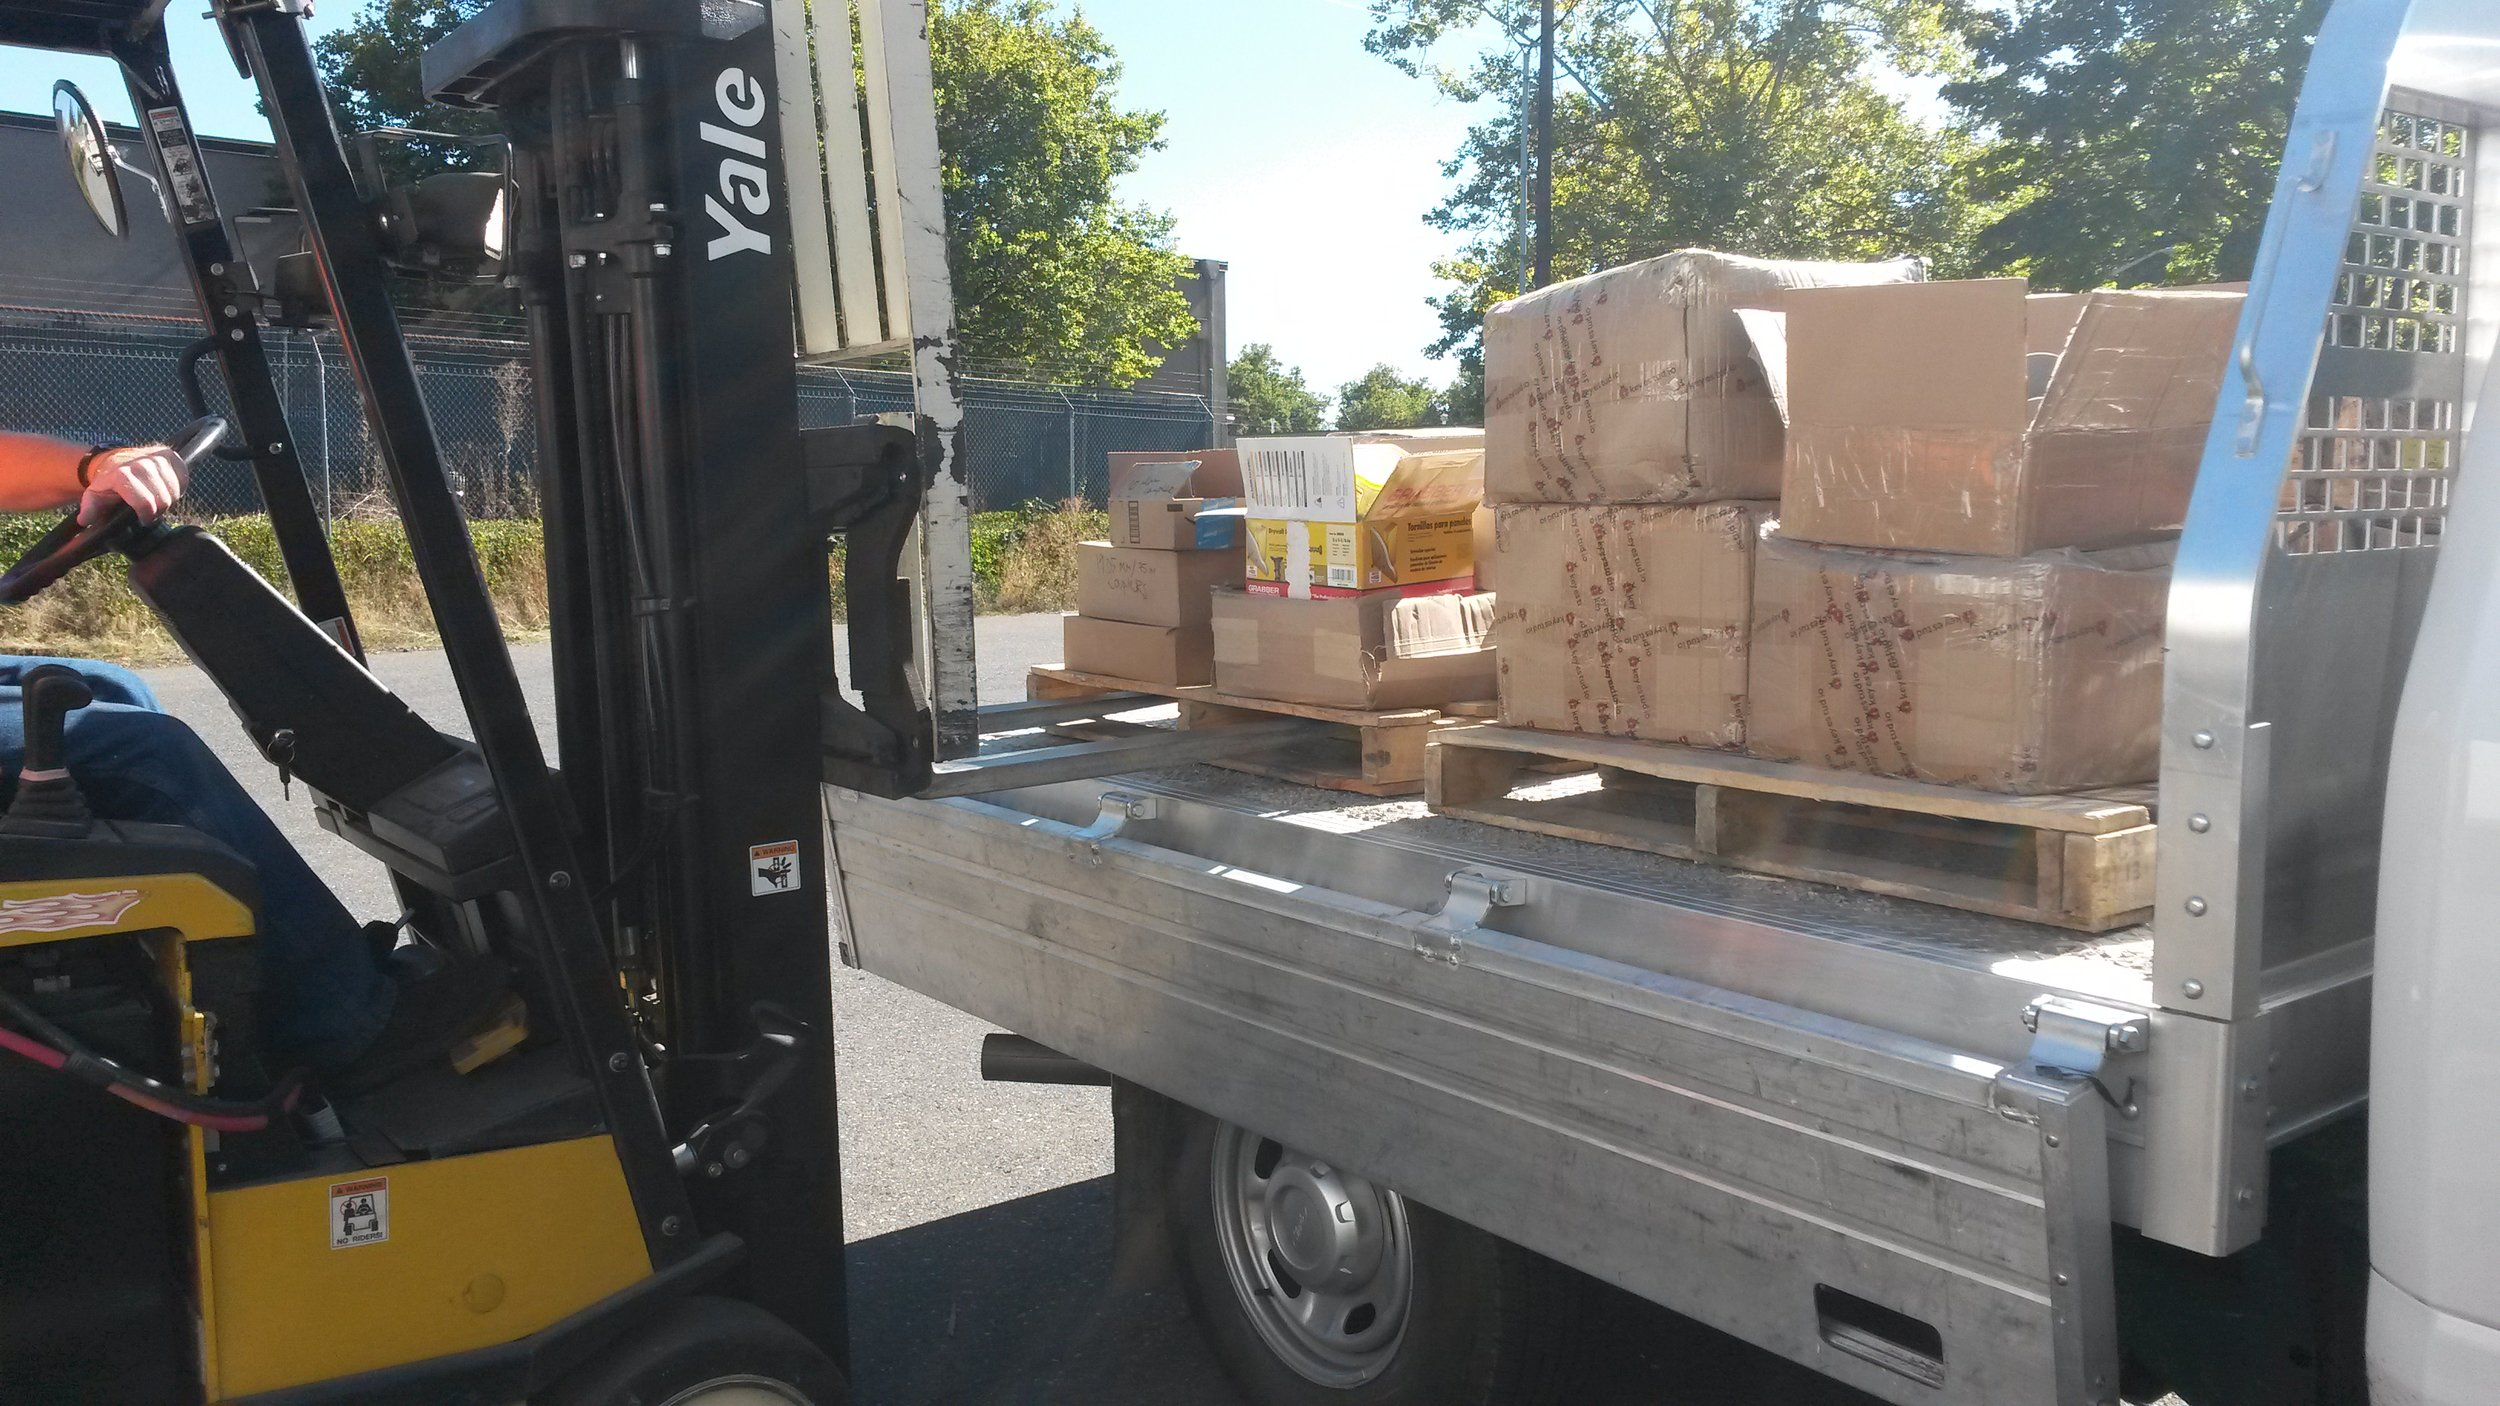 The second load of stuff being forklifted off the truck.